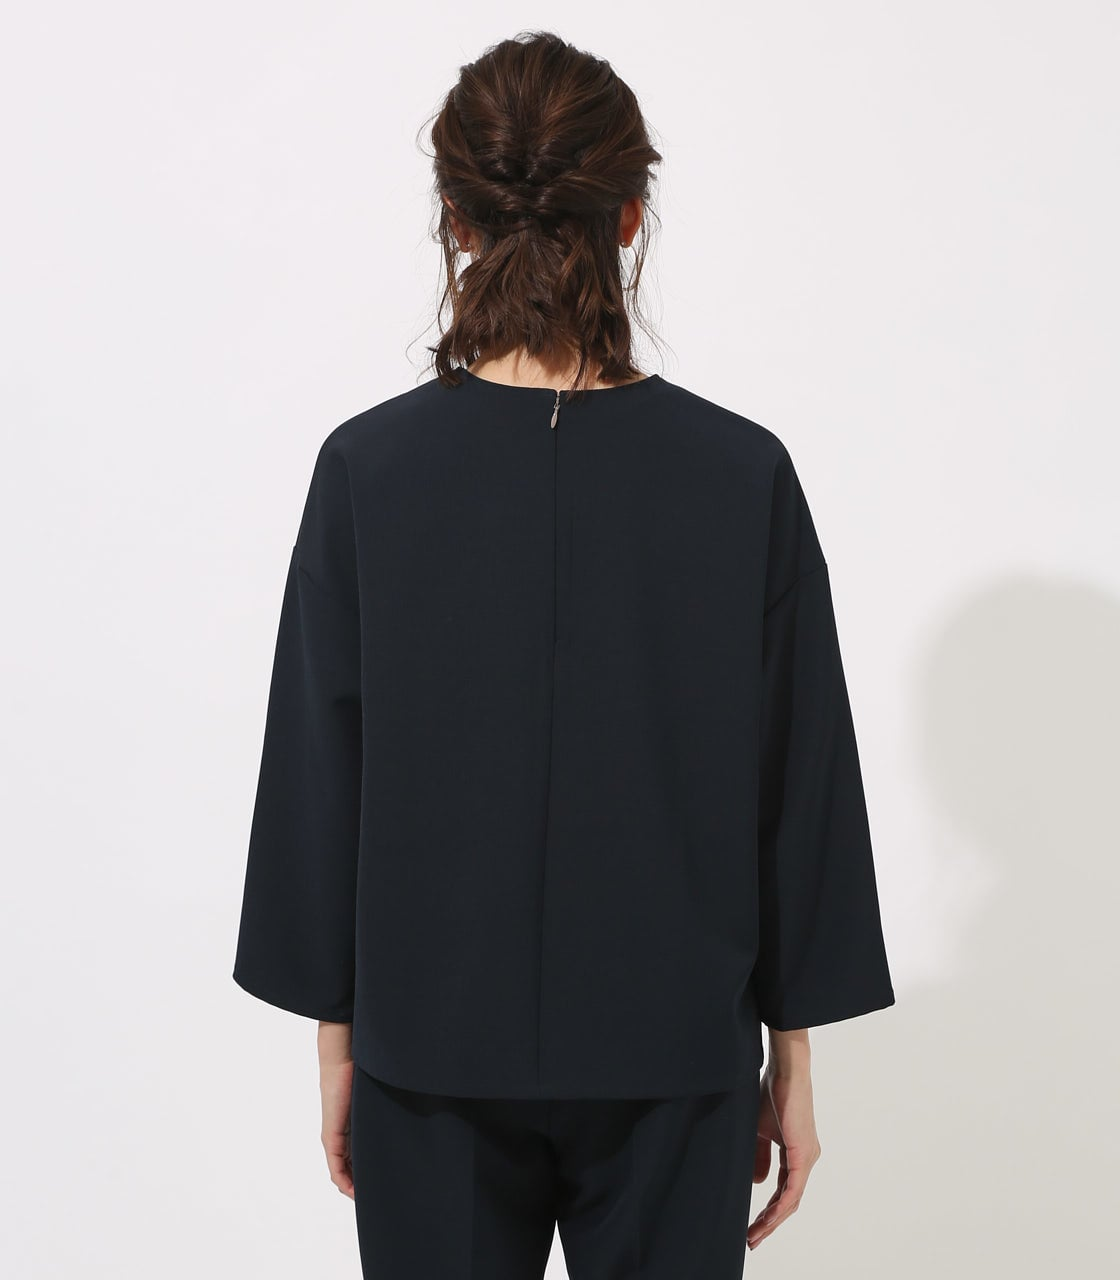 【AZUL BY MOUSSY】LAYERED IRREGULAR HEM TOPS 詳細画像 NVY 7